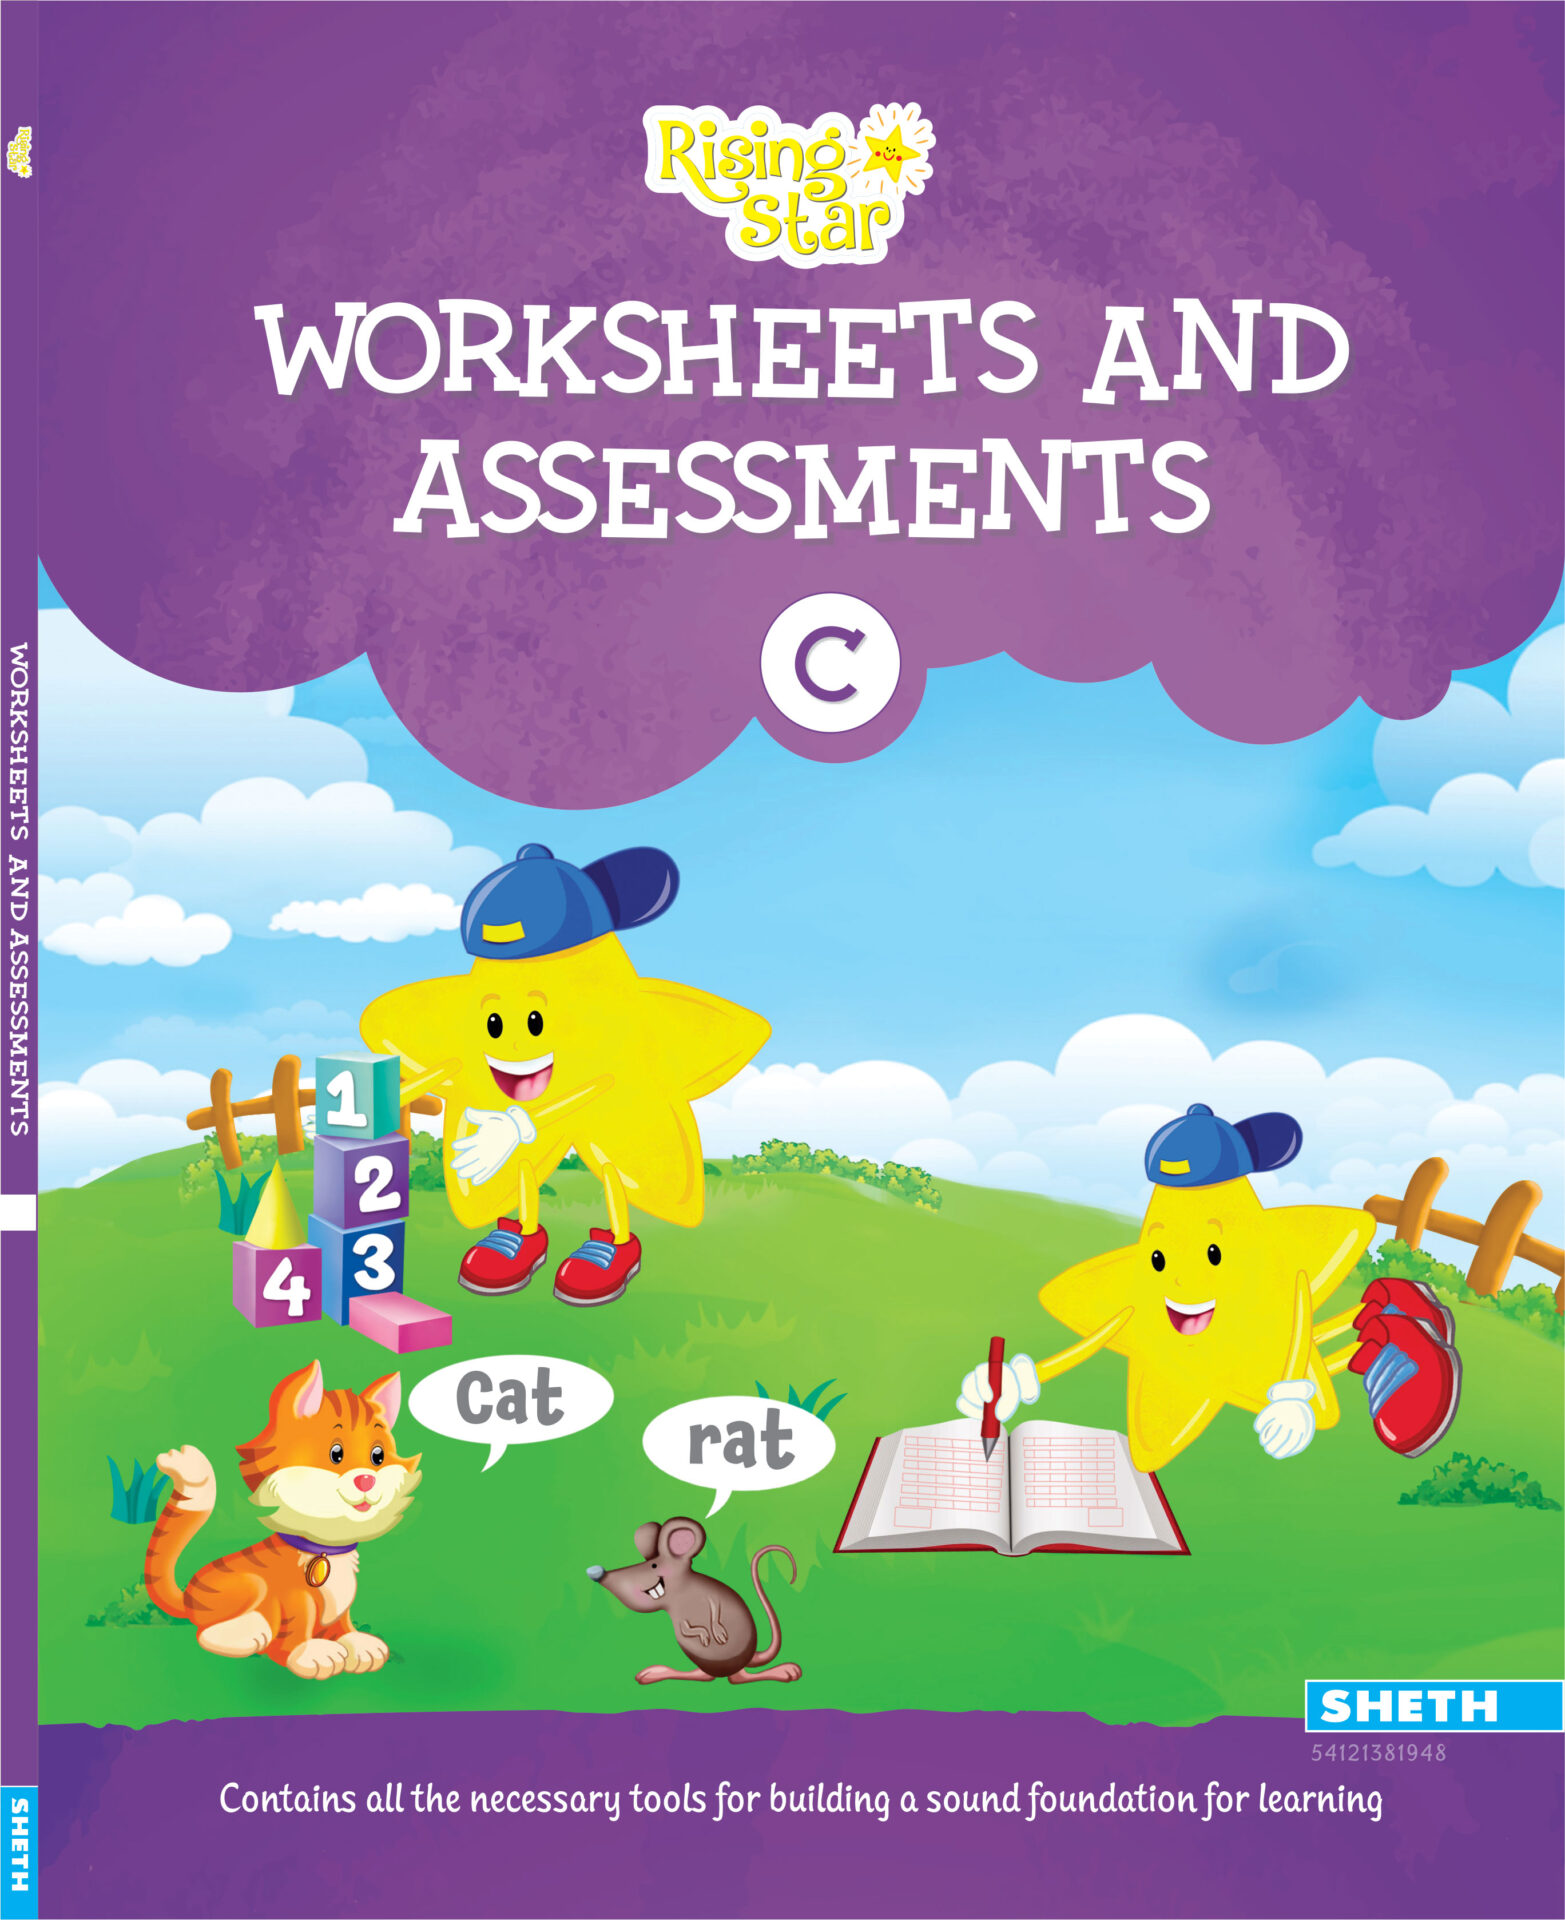 Rising Star Worksheets and Assessments C 1 1